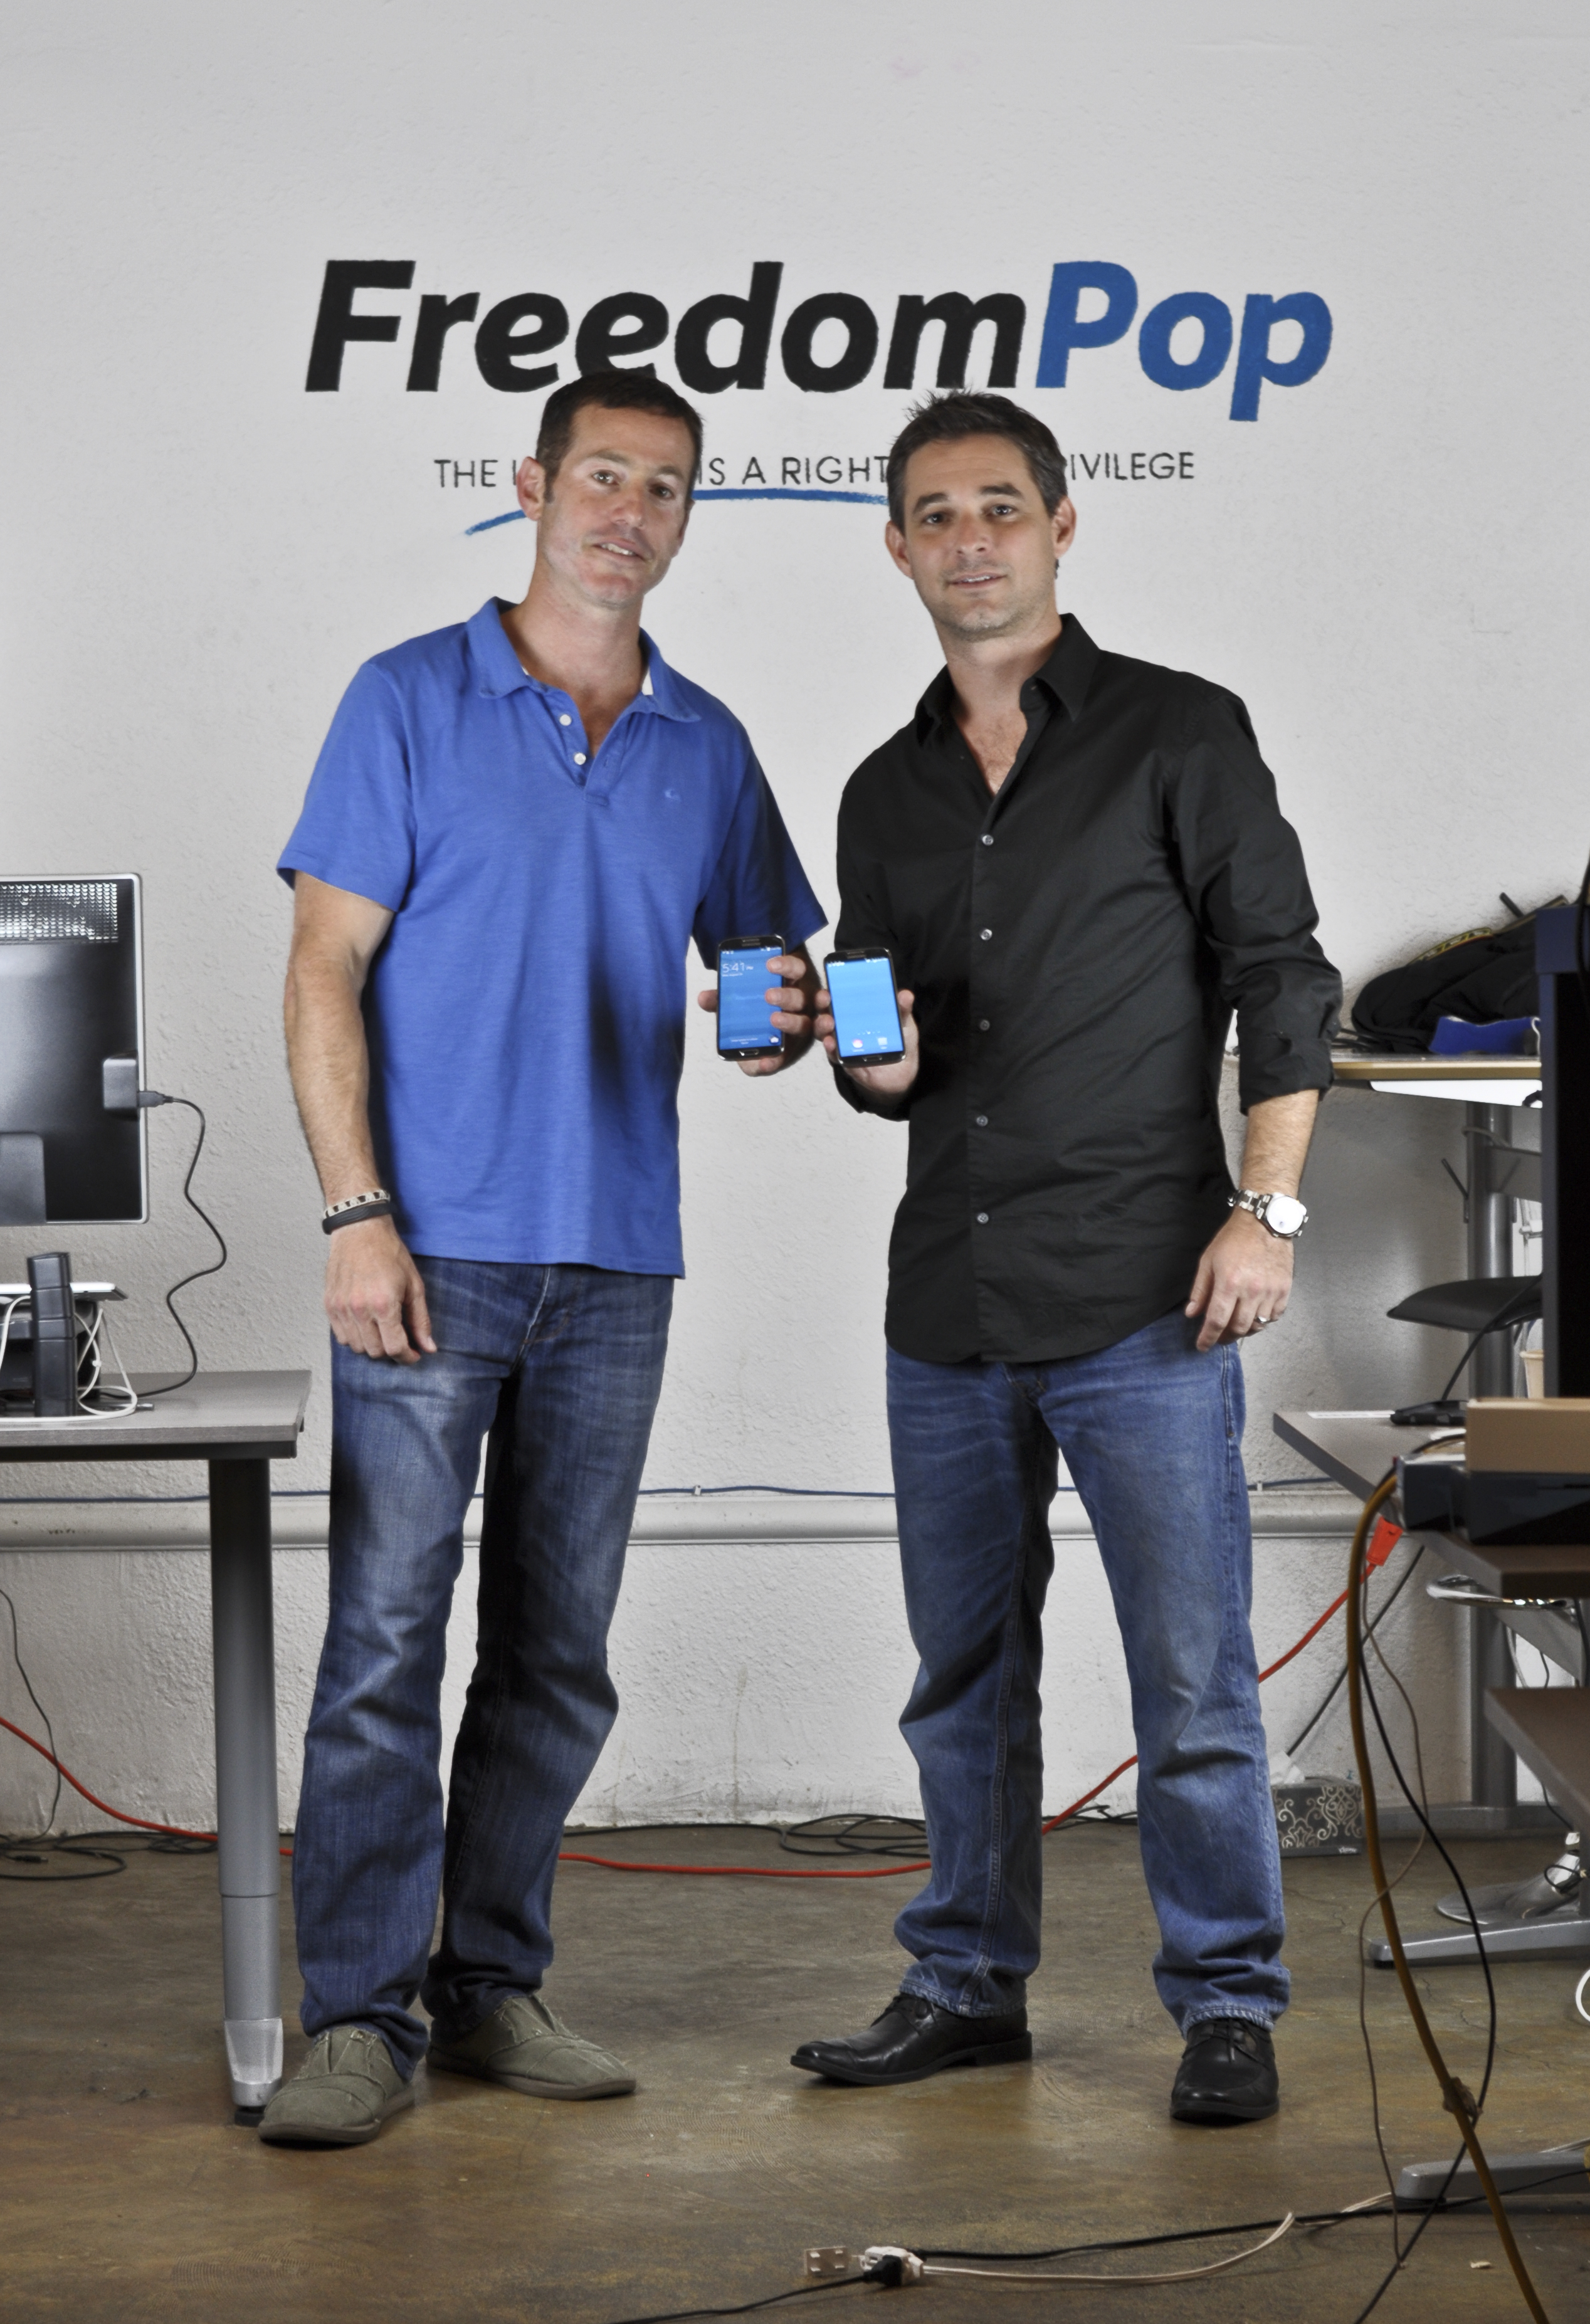 Free Wireless Service FreedomPop Adding Family Plans | Fortune